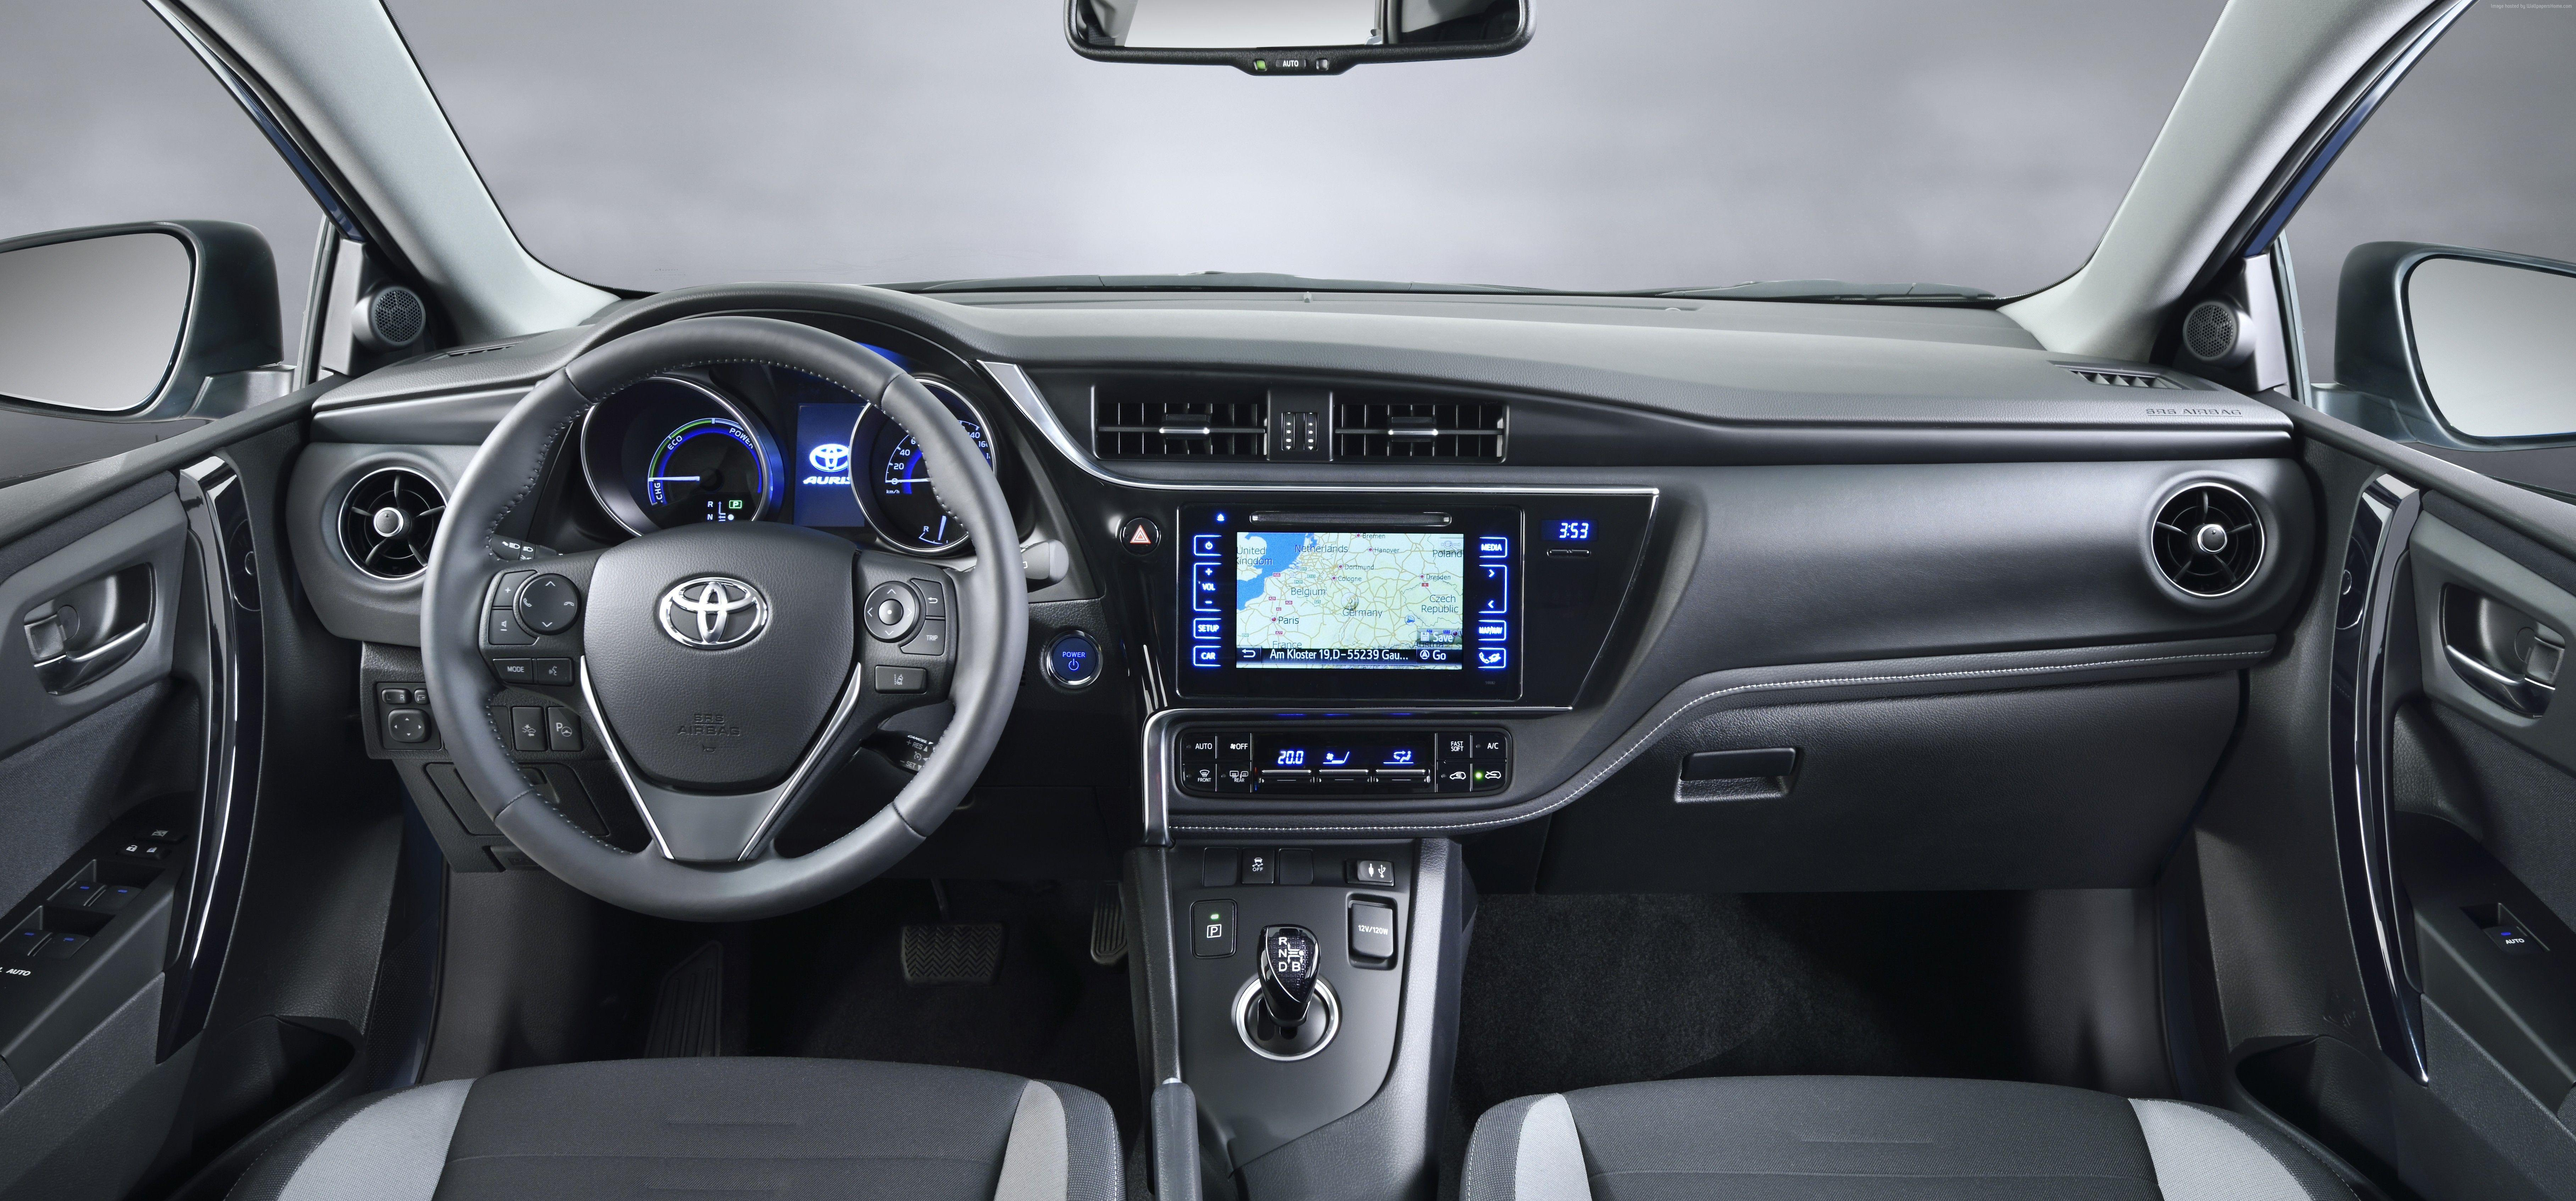 Wallpapers Toyota auris, hatchback, hybrid, blue, interior., Cars